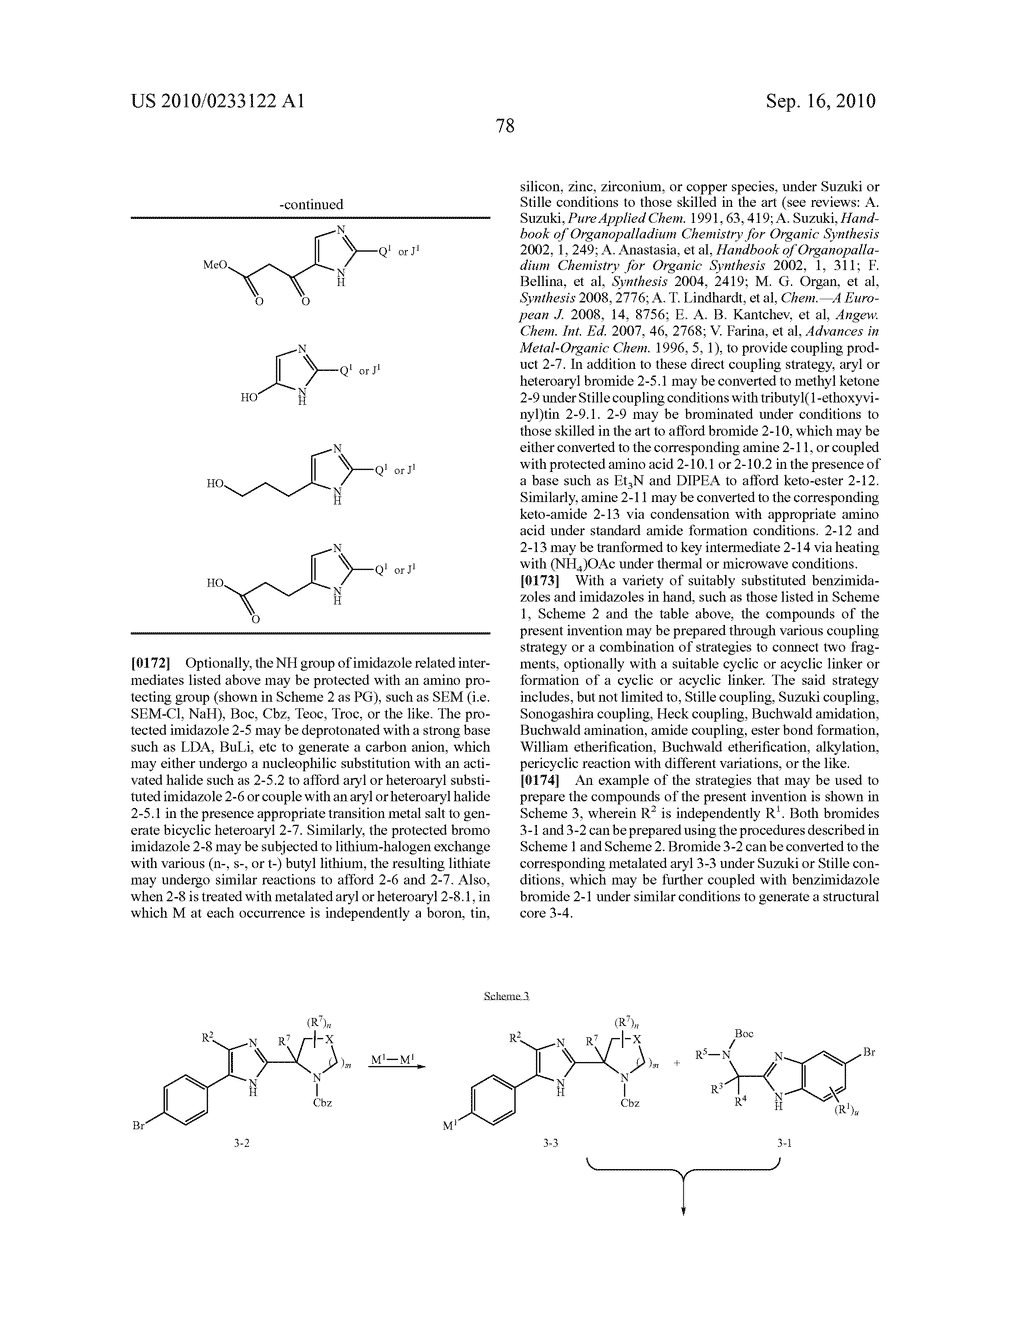 NOVEL BENZIMIDAZOLE DERIVATIVES - diagram, schematic, and image 79